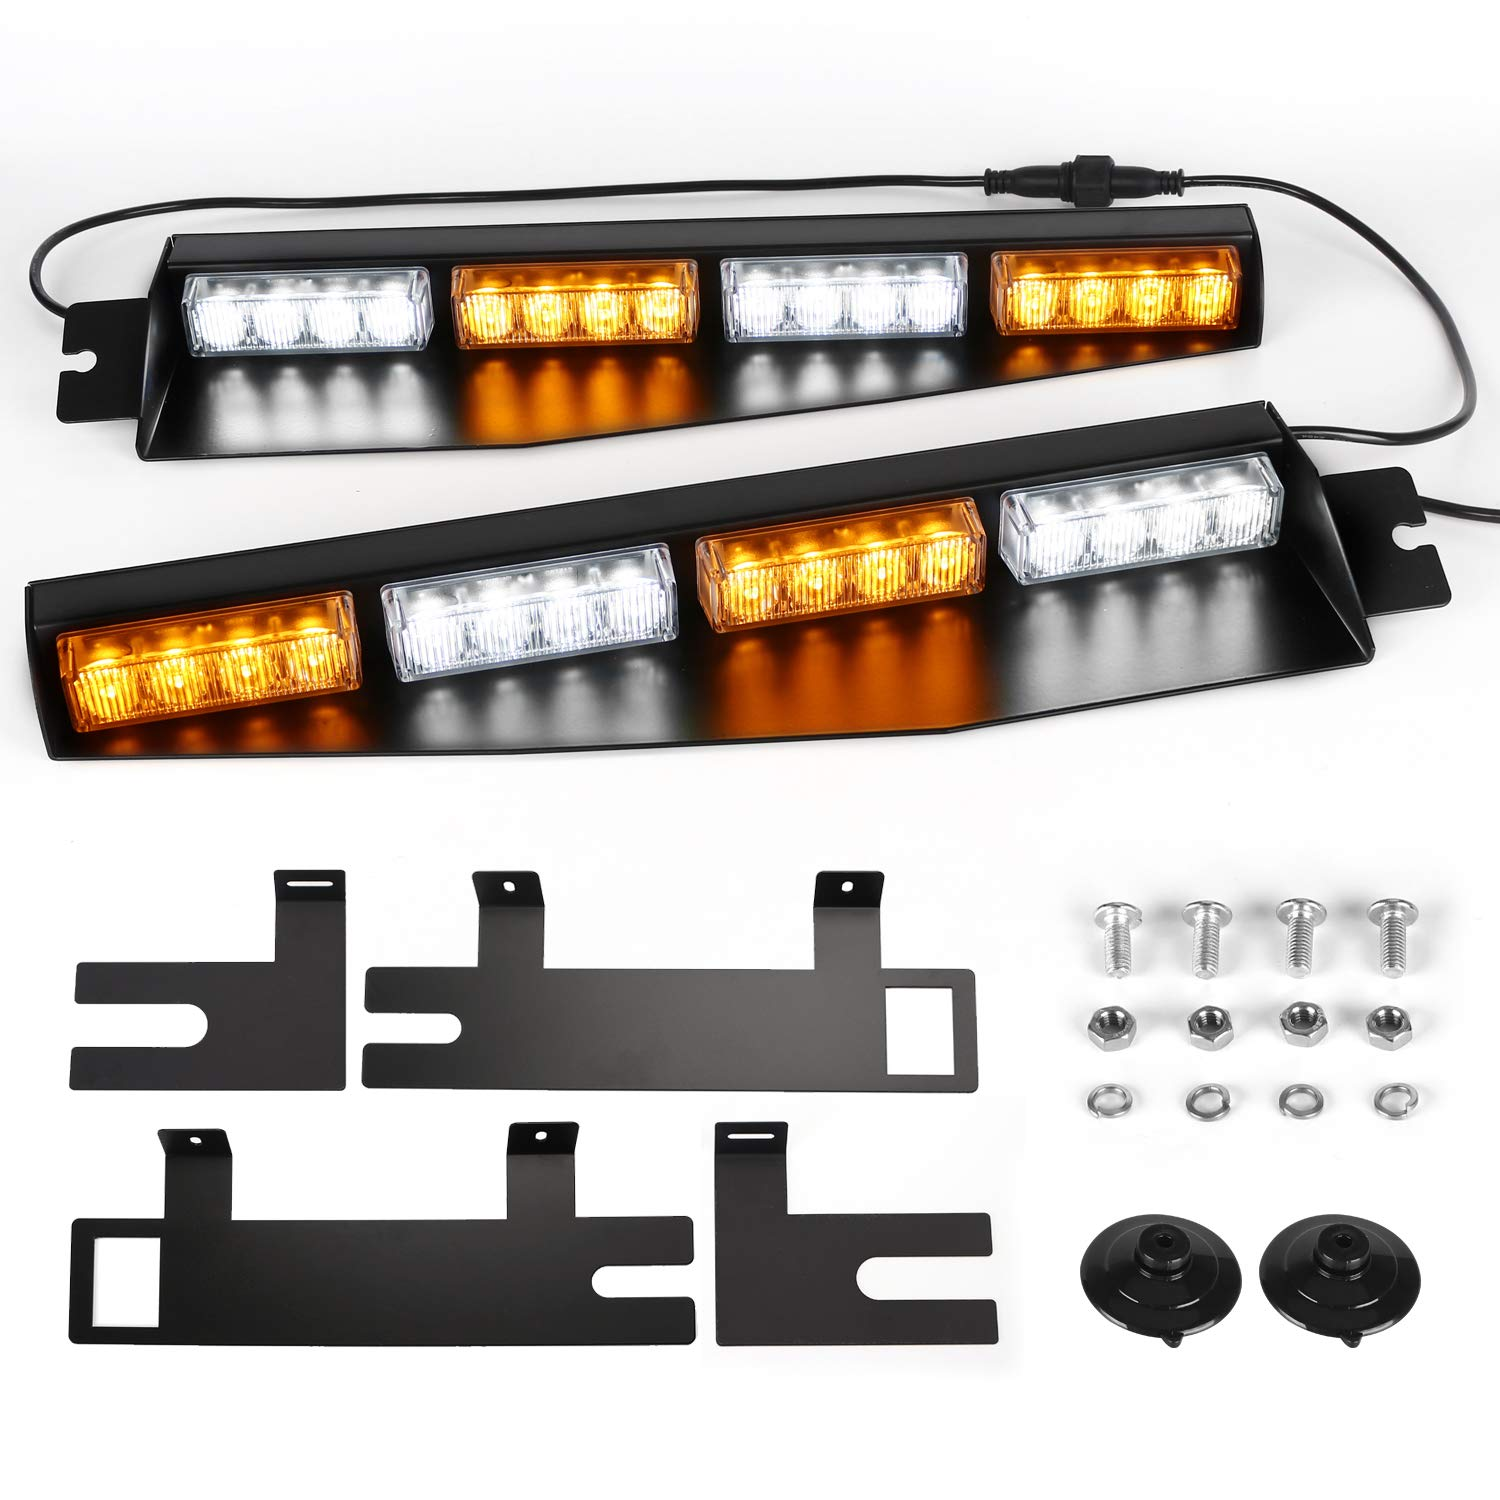 ASPL 32LED Visor Lights 26 Flash Patterns Windshield Emergency Hazard Warning Strobe Beacon Split Mount Deck Dash Lamp with Extend Bracket (Amber/White/Amber/White)